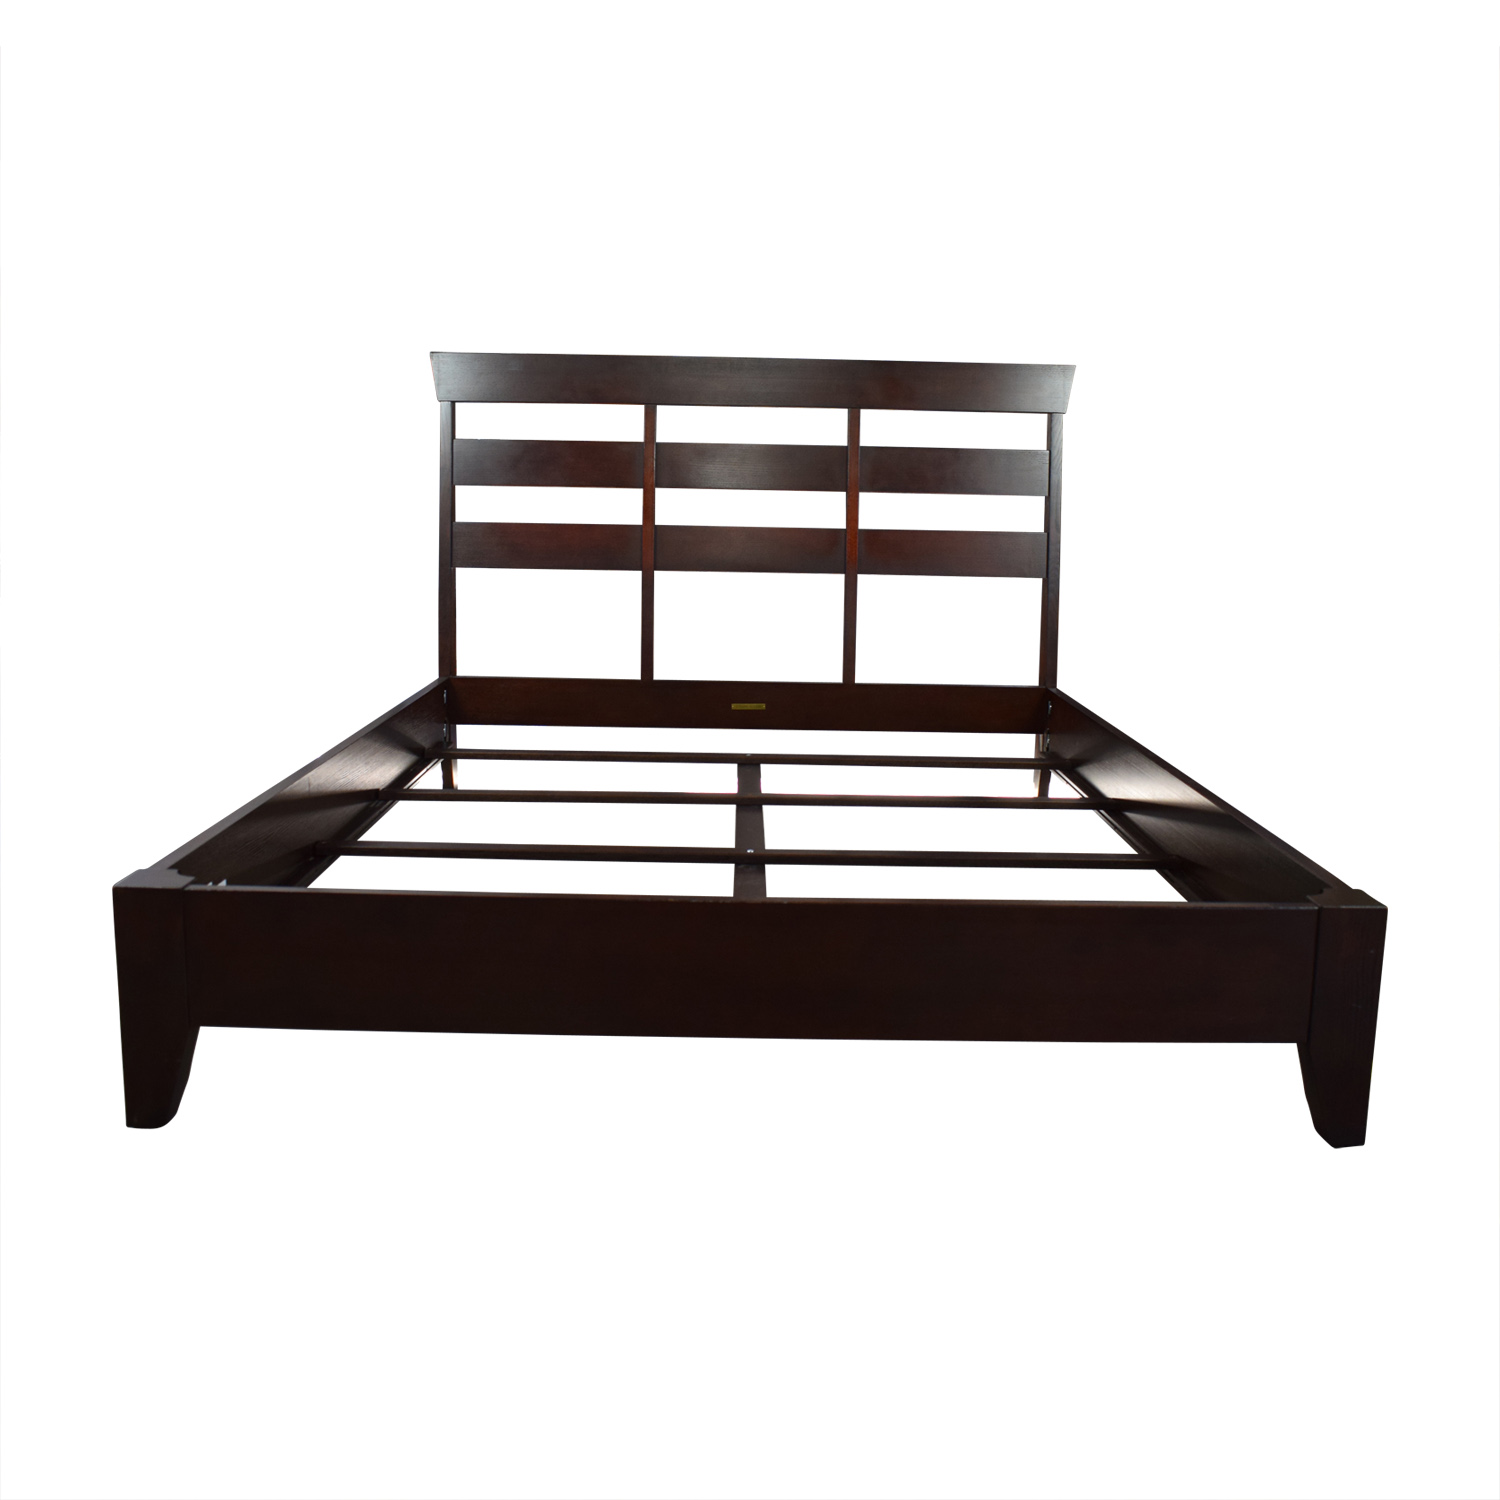 Ethan Allen Wood Queen Bed Frame / Bed Frames